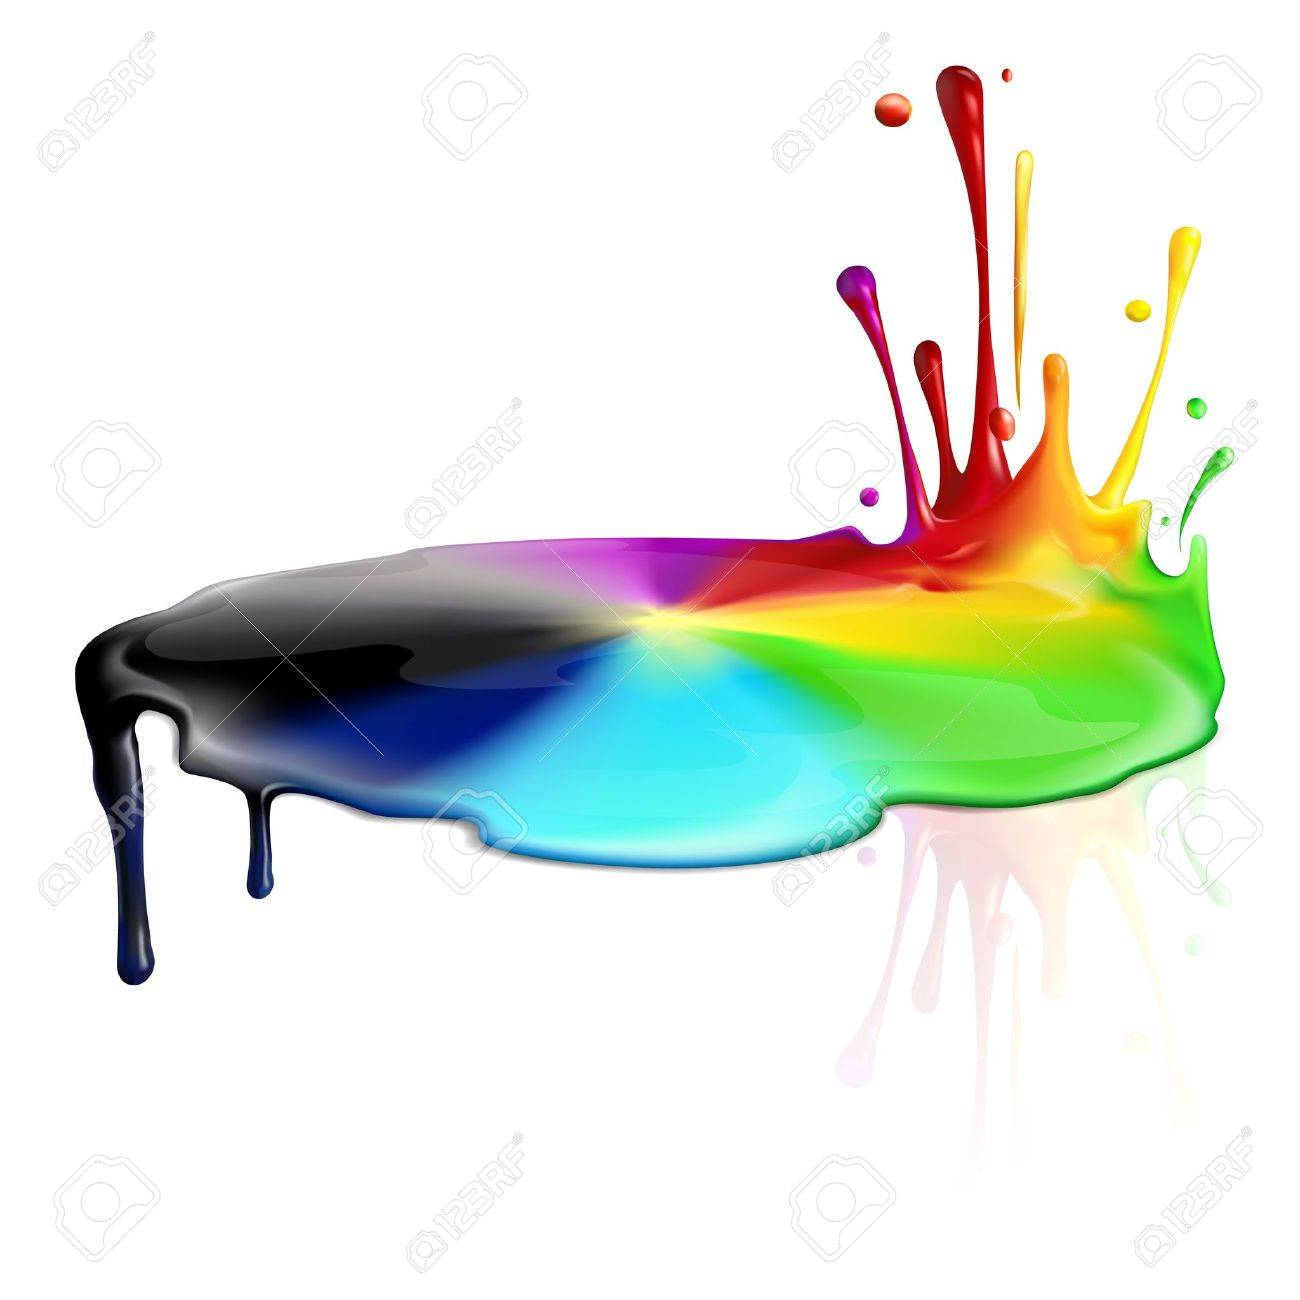 Colorful and colorless paint splashing - 13683100